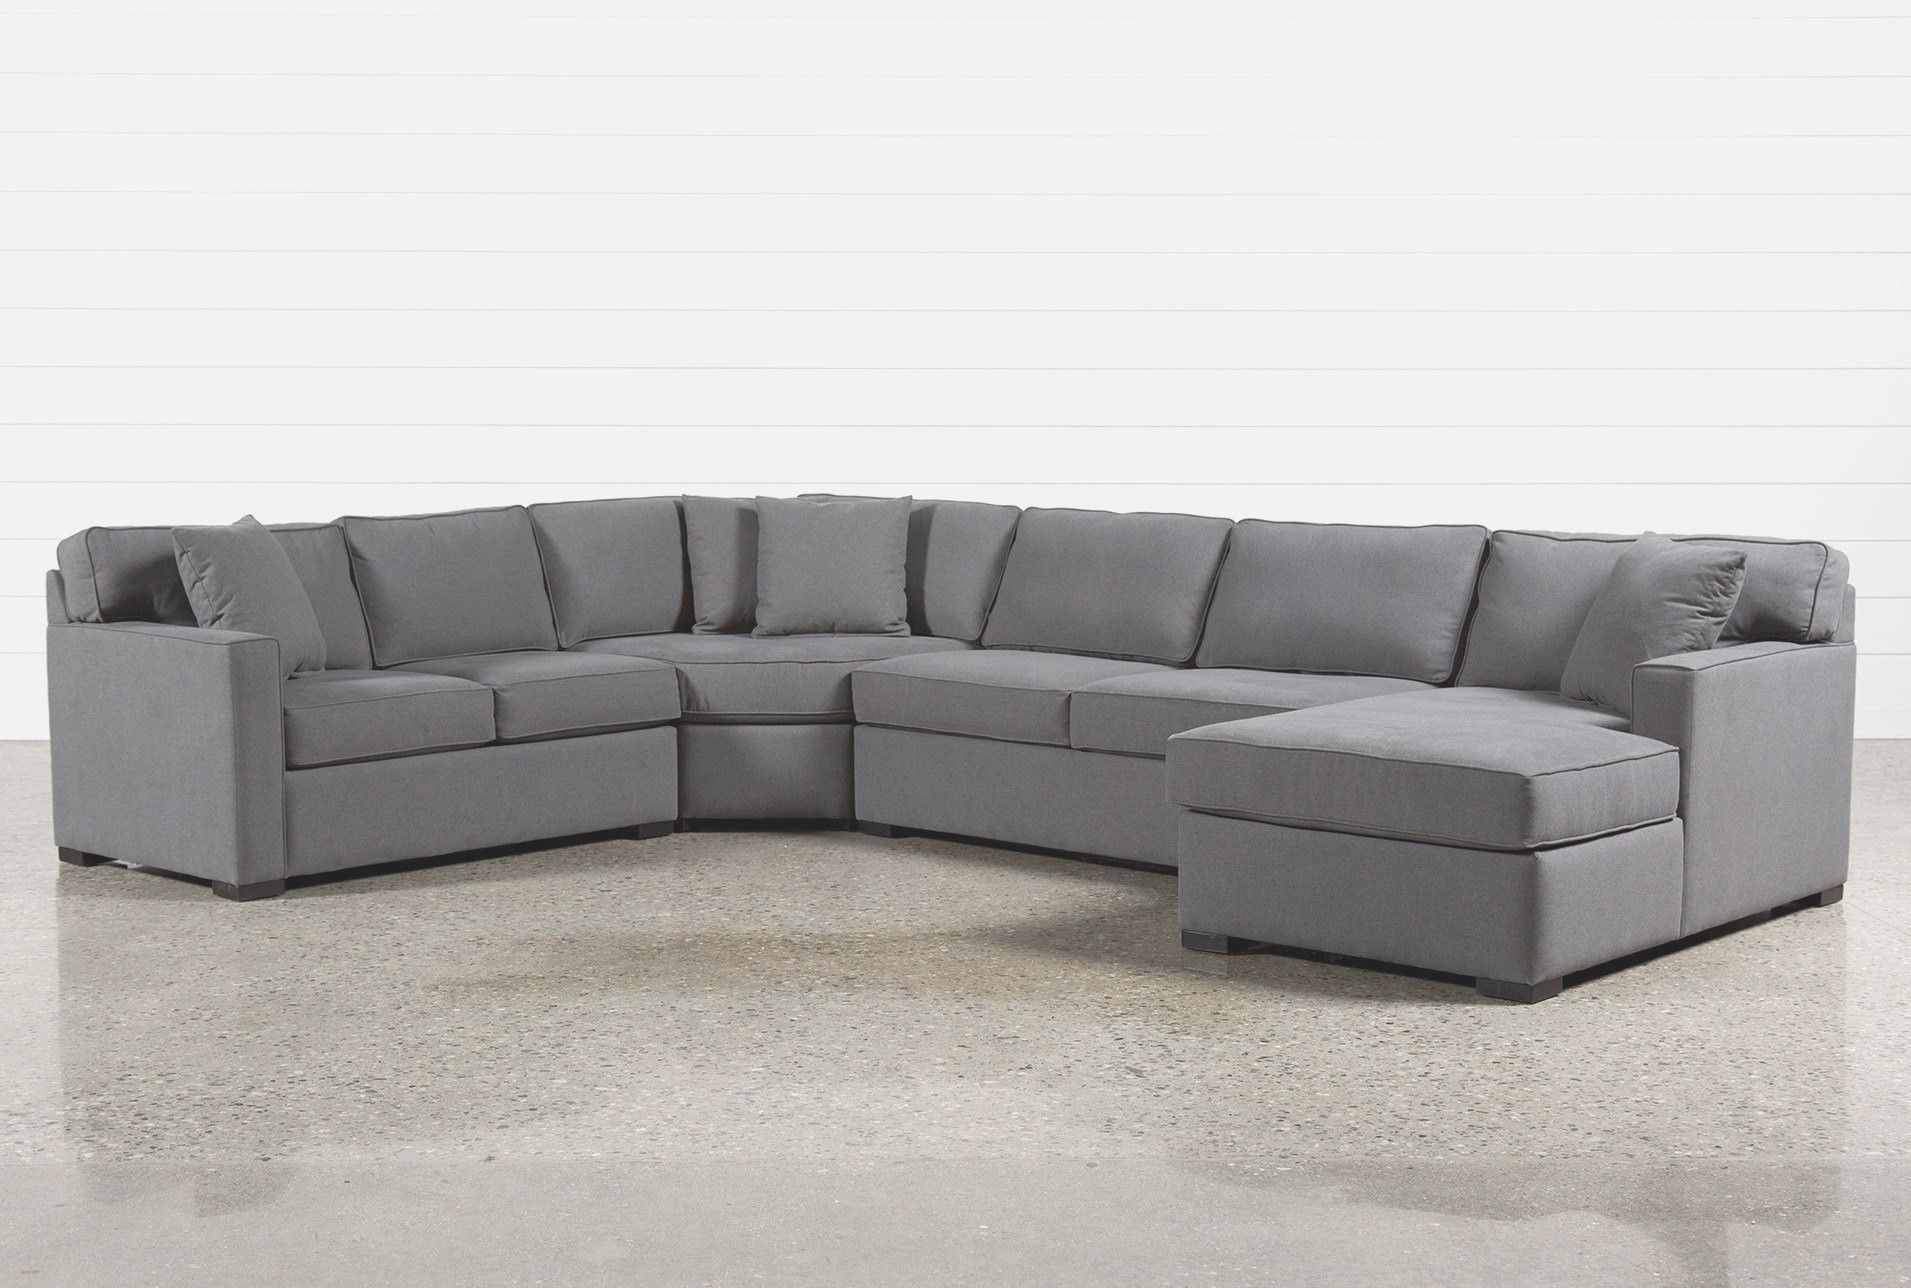 Sofas For Small Apartments - Best Sleeper Sofas For Small Apartments pertaining to Karen 3 Piece Sectionals (Image 26 of 30)